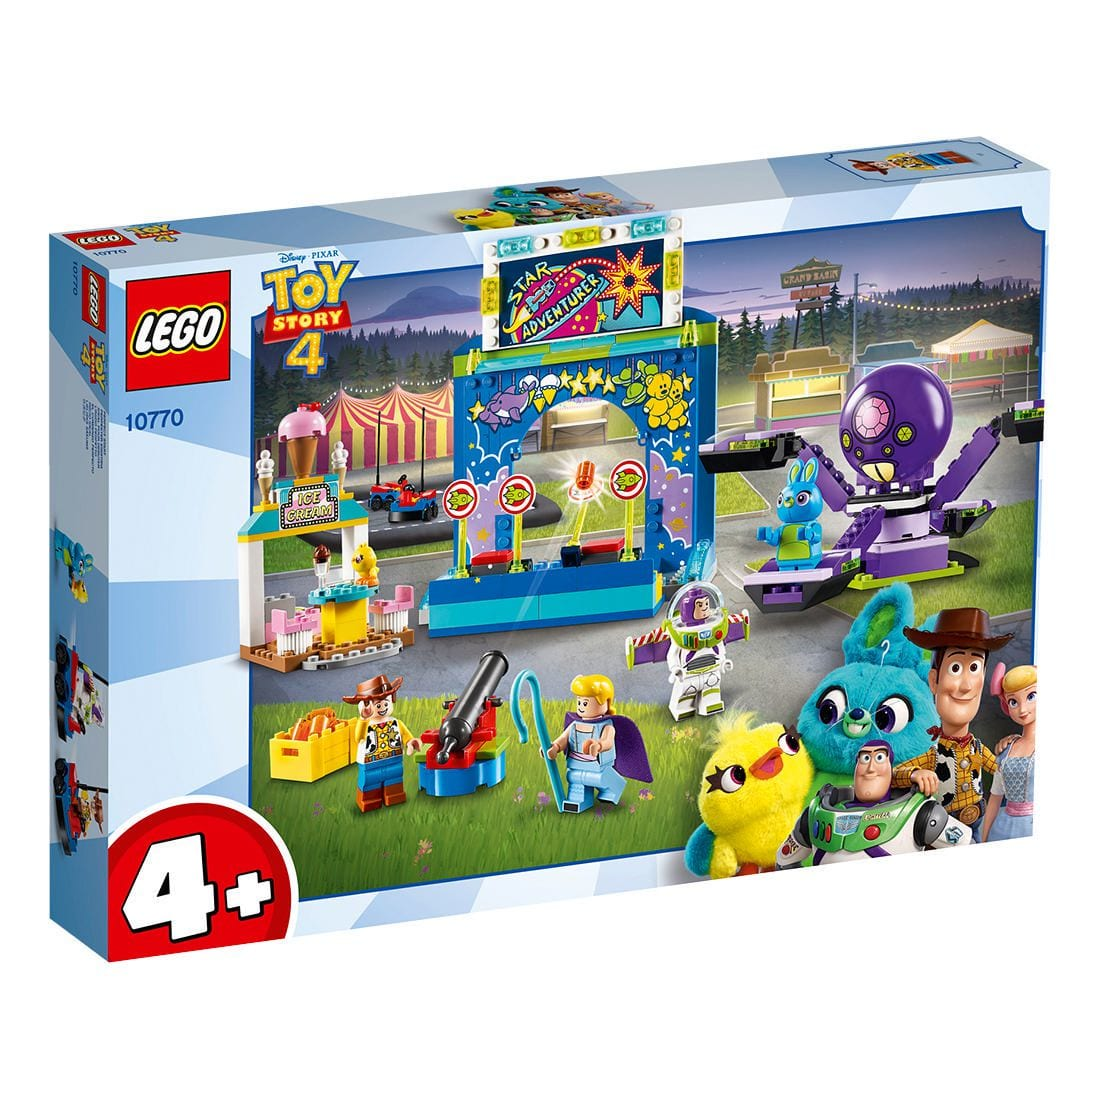 LEGO Toy Story 4 Official Box Art and Set Images Revealed